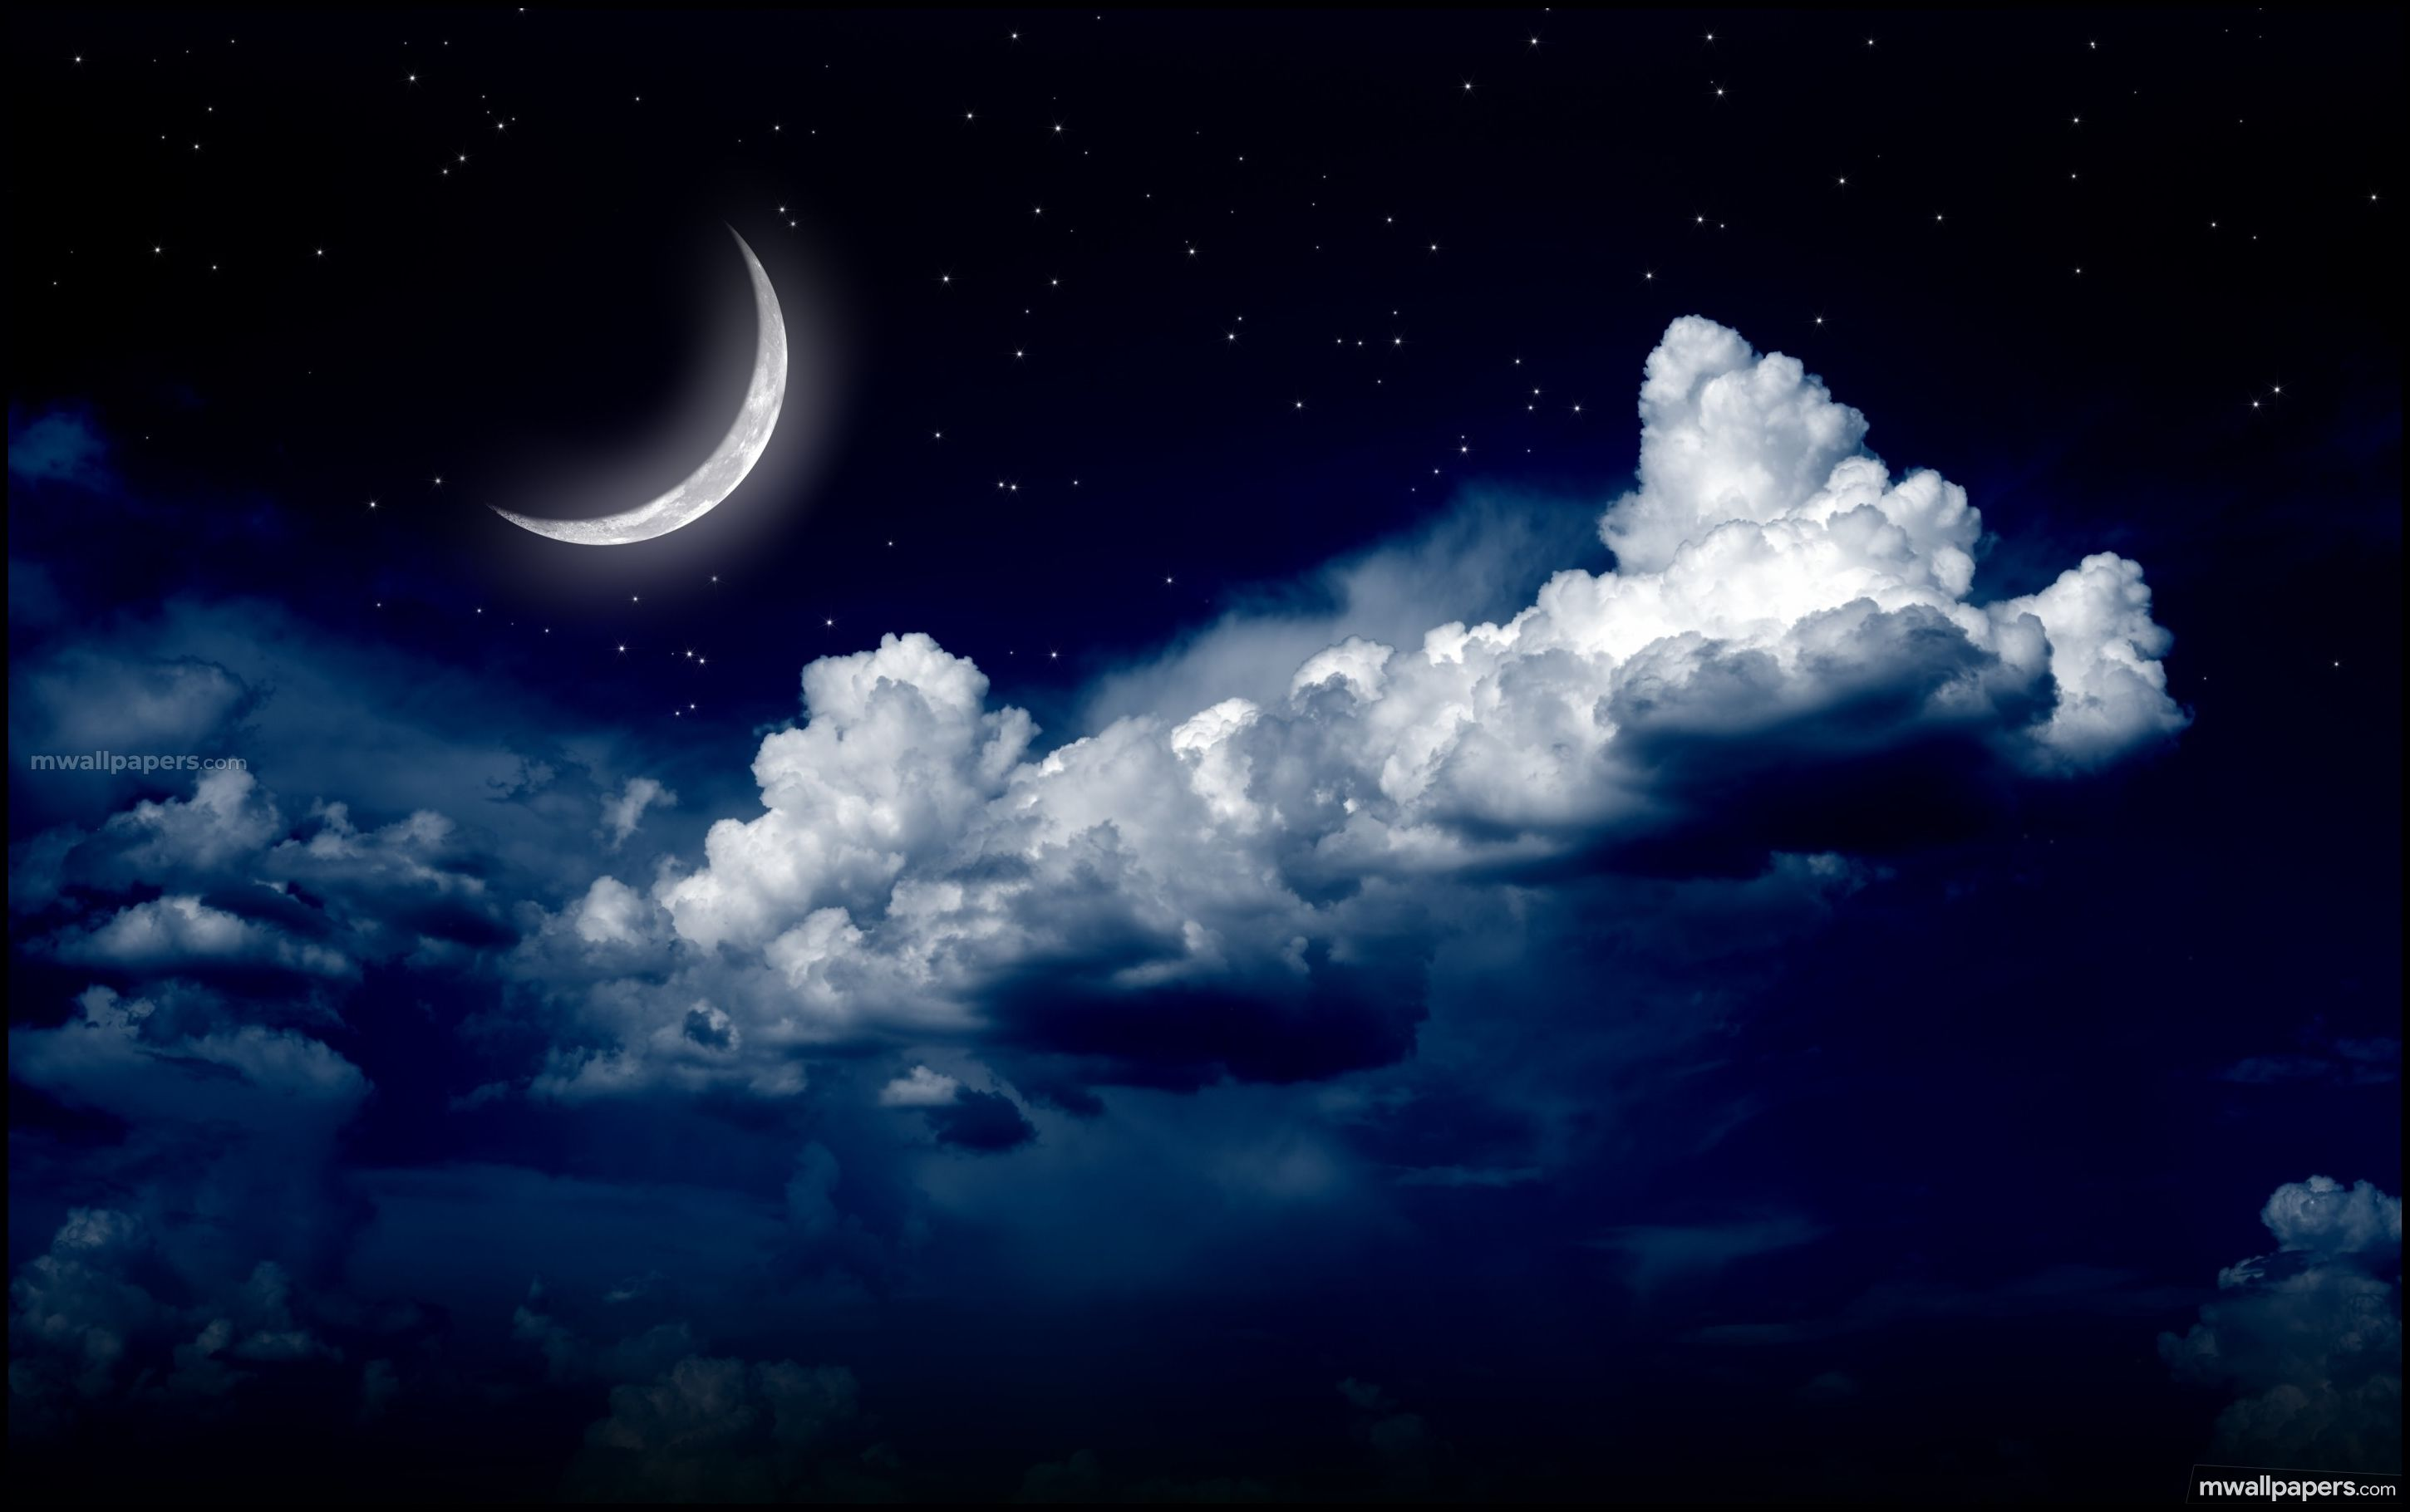 Sky Stars Hd Images 1080p 1273 Sky Stars Hdimages Wallpapers Images Moon And Stars Wallpaper Night Clouds Moon Clouds